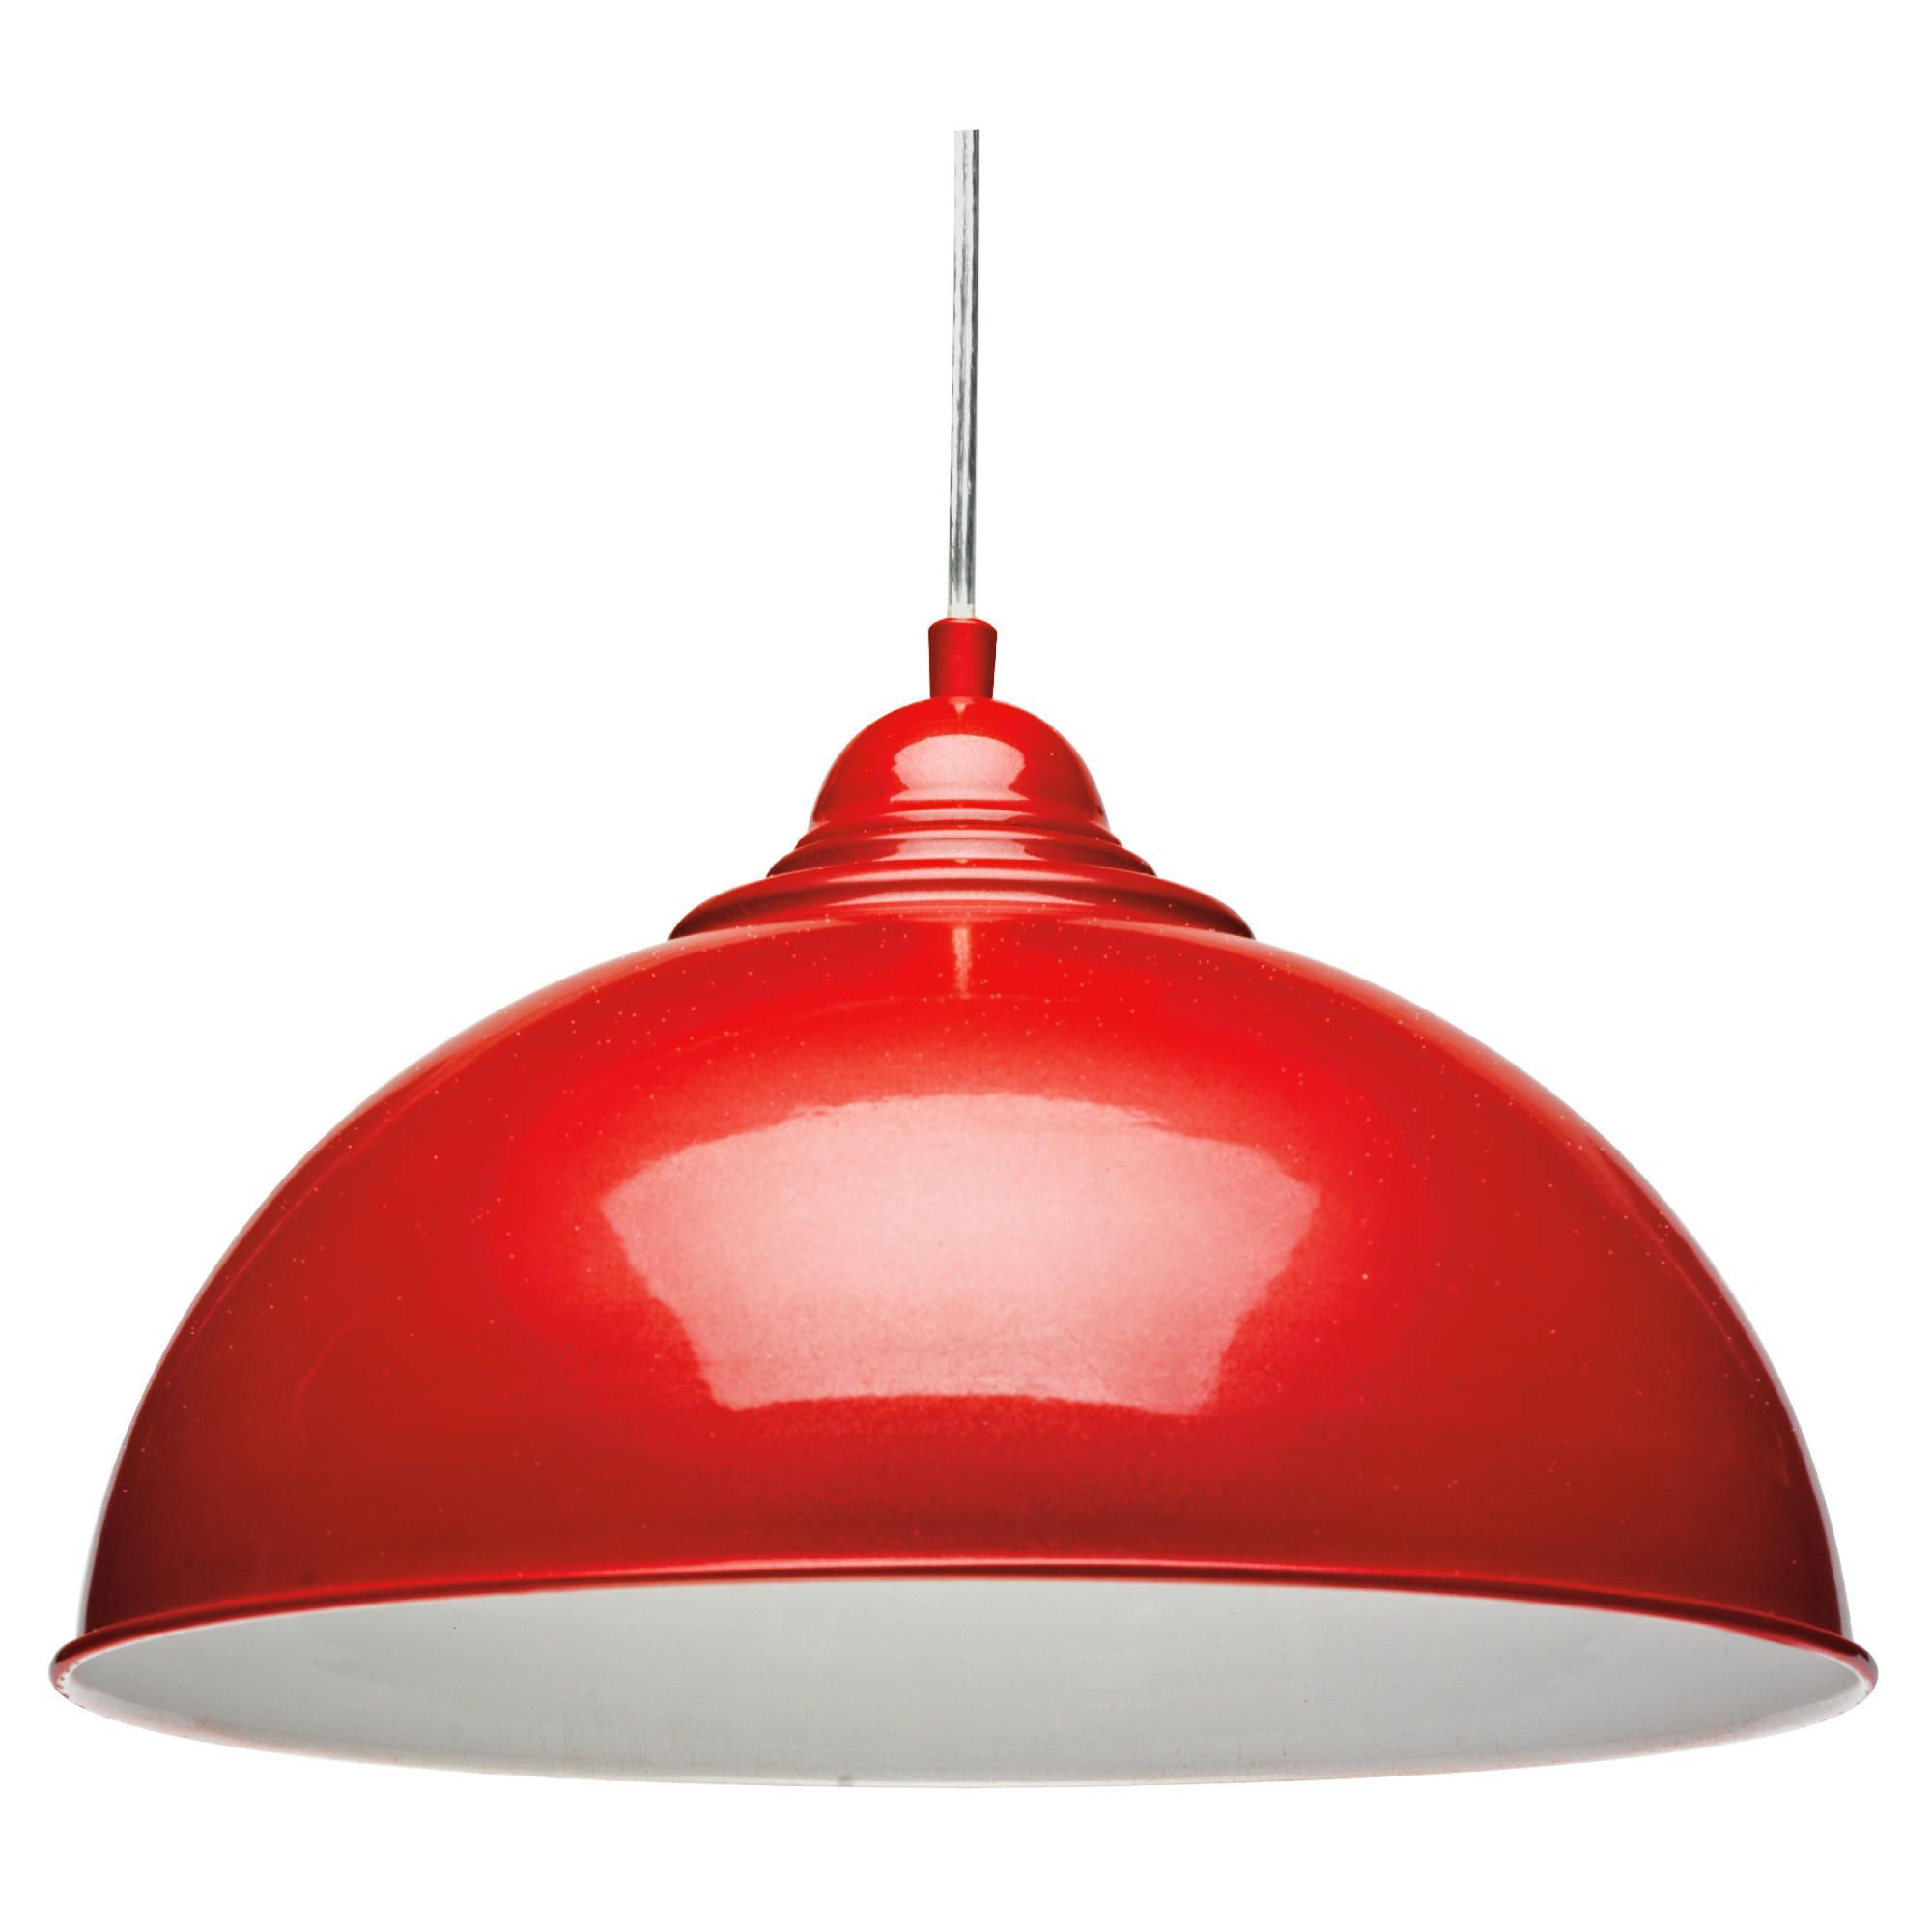 Retro Pendant Light Fitting In Red